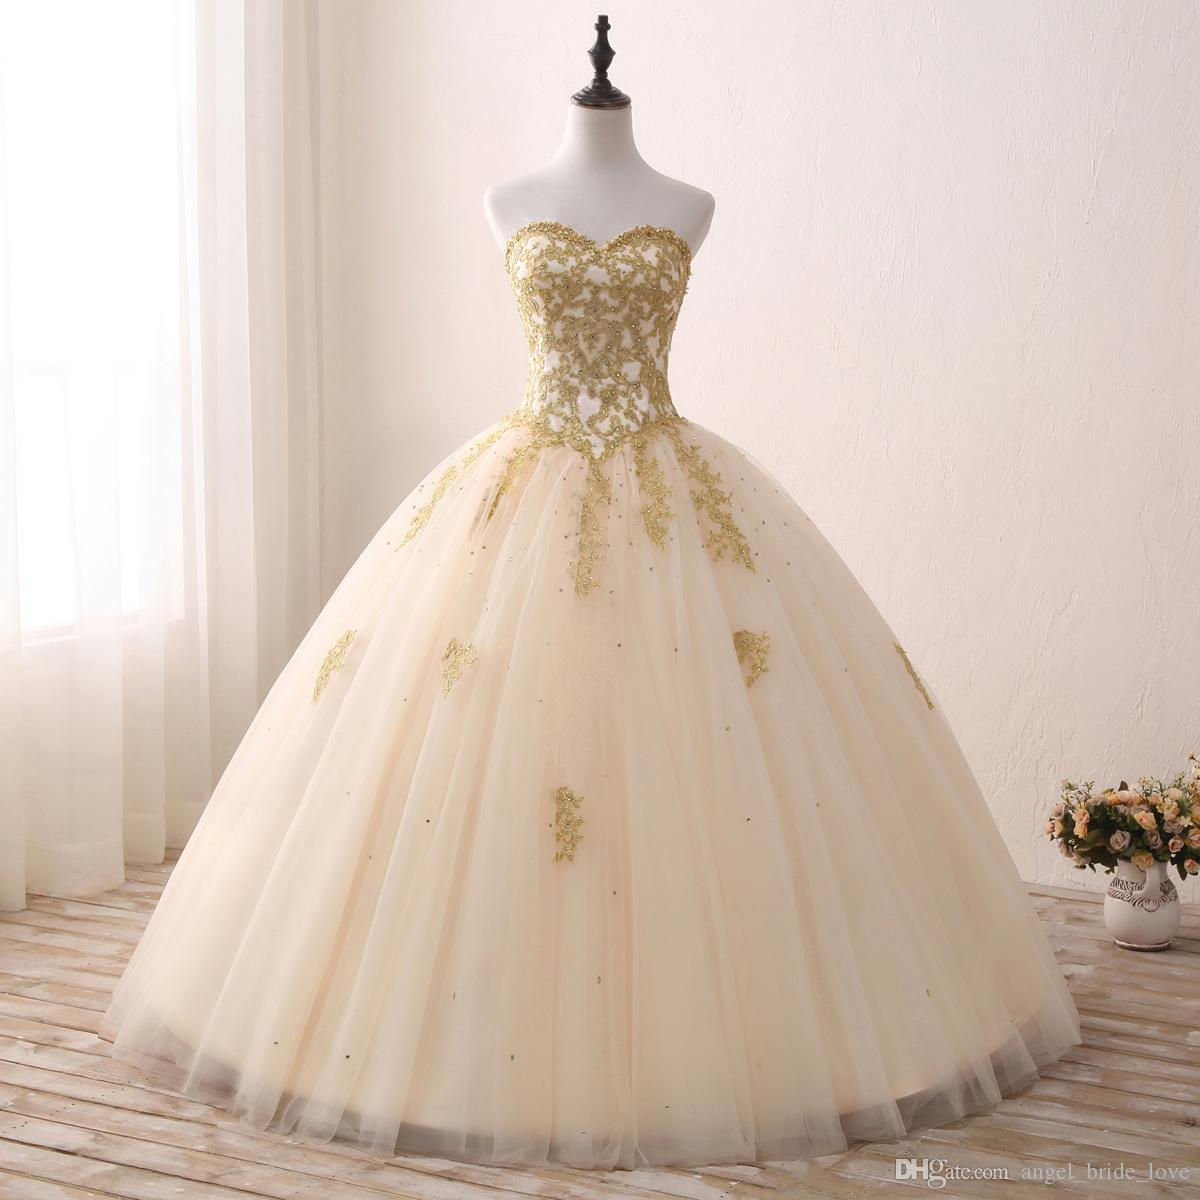 2018 Cheap Real Images Gold Appliqued Ball Gown Quinceanera Dresses Sweetheart Tulle Floor Length Sweet 16 Dresses Party Dress QQ13